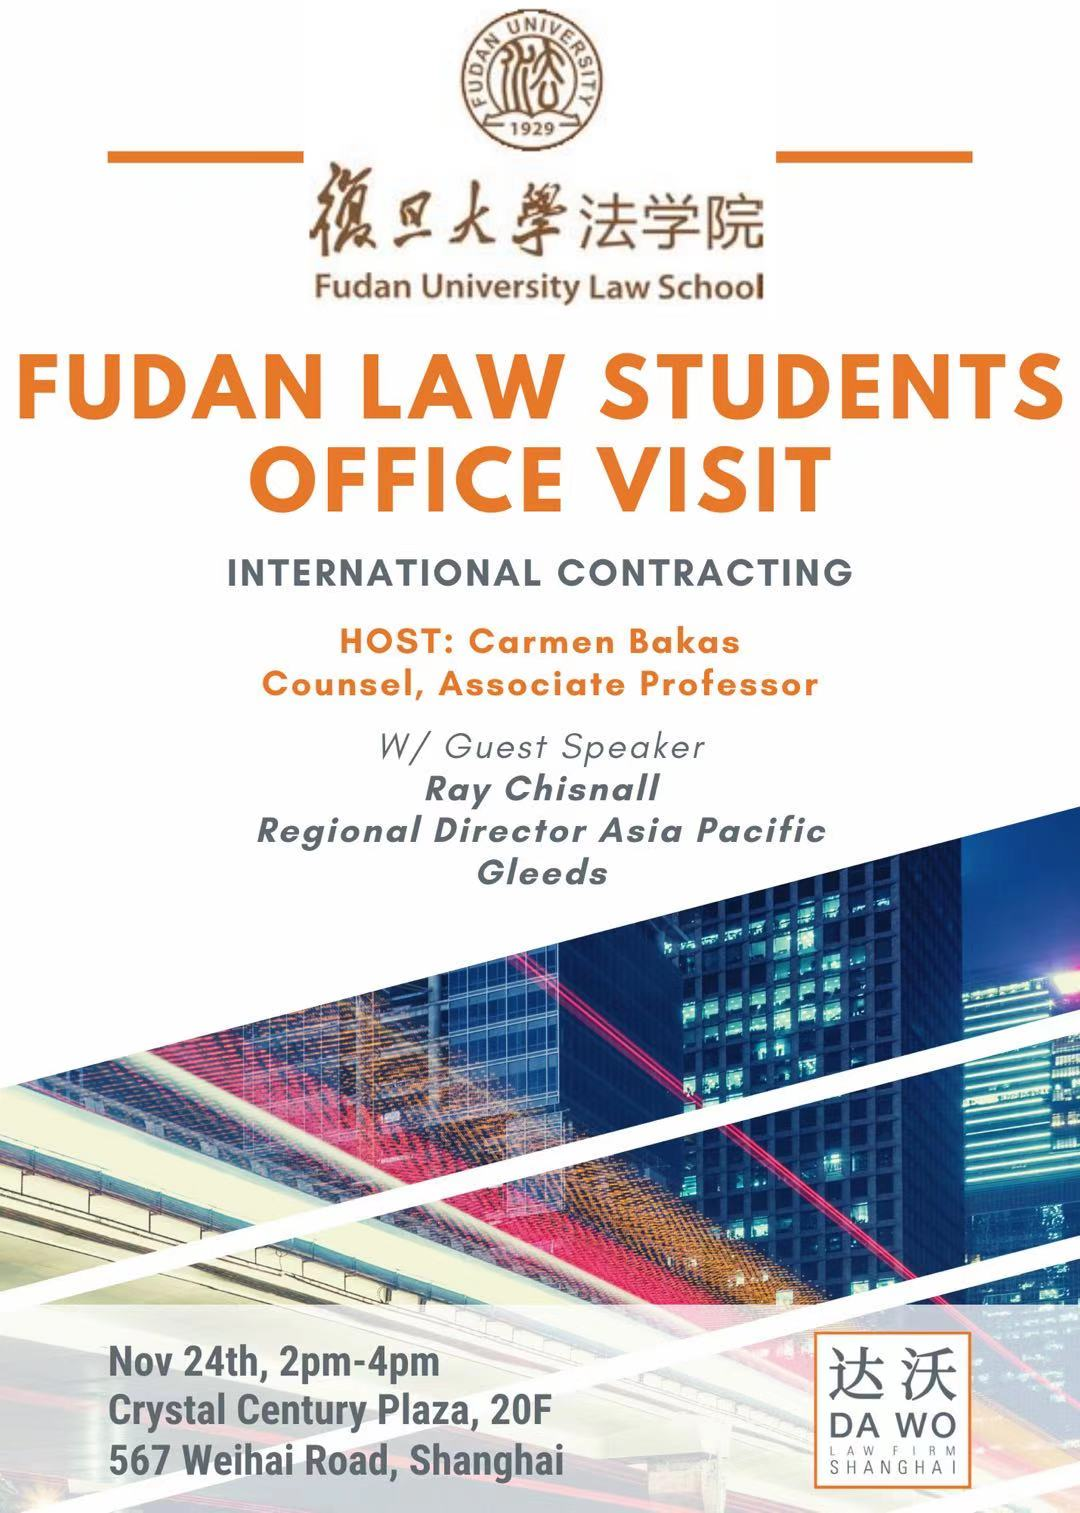 Fudan Law Students Office Visit (Nov. 24th)